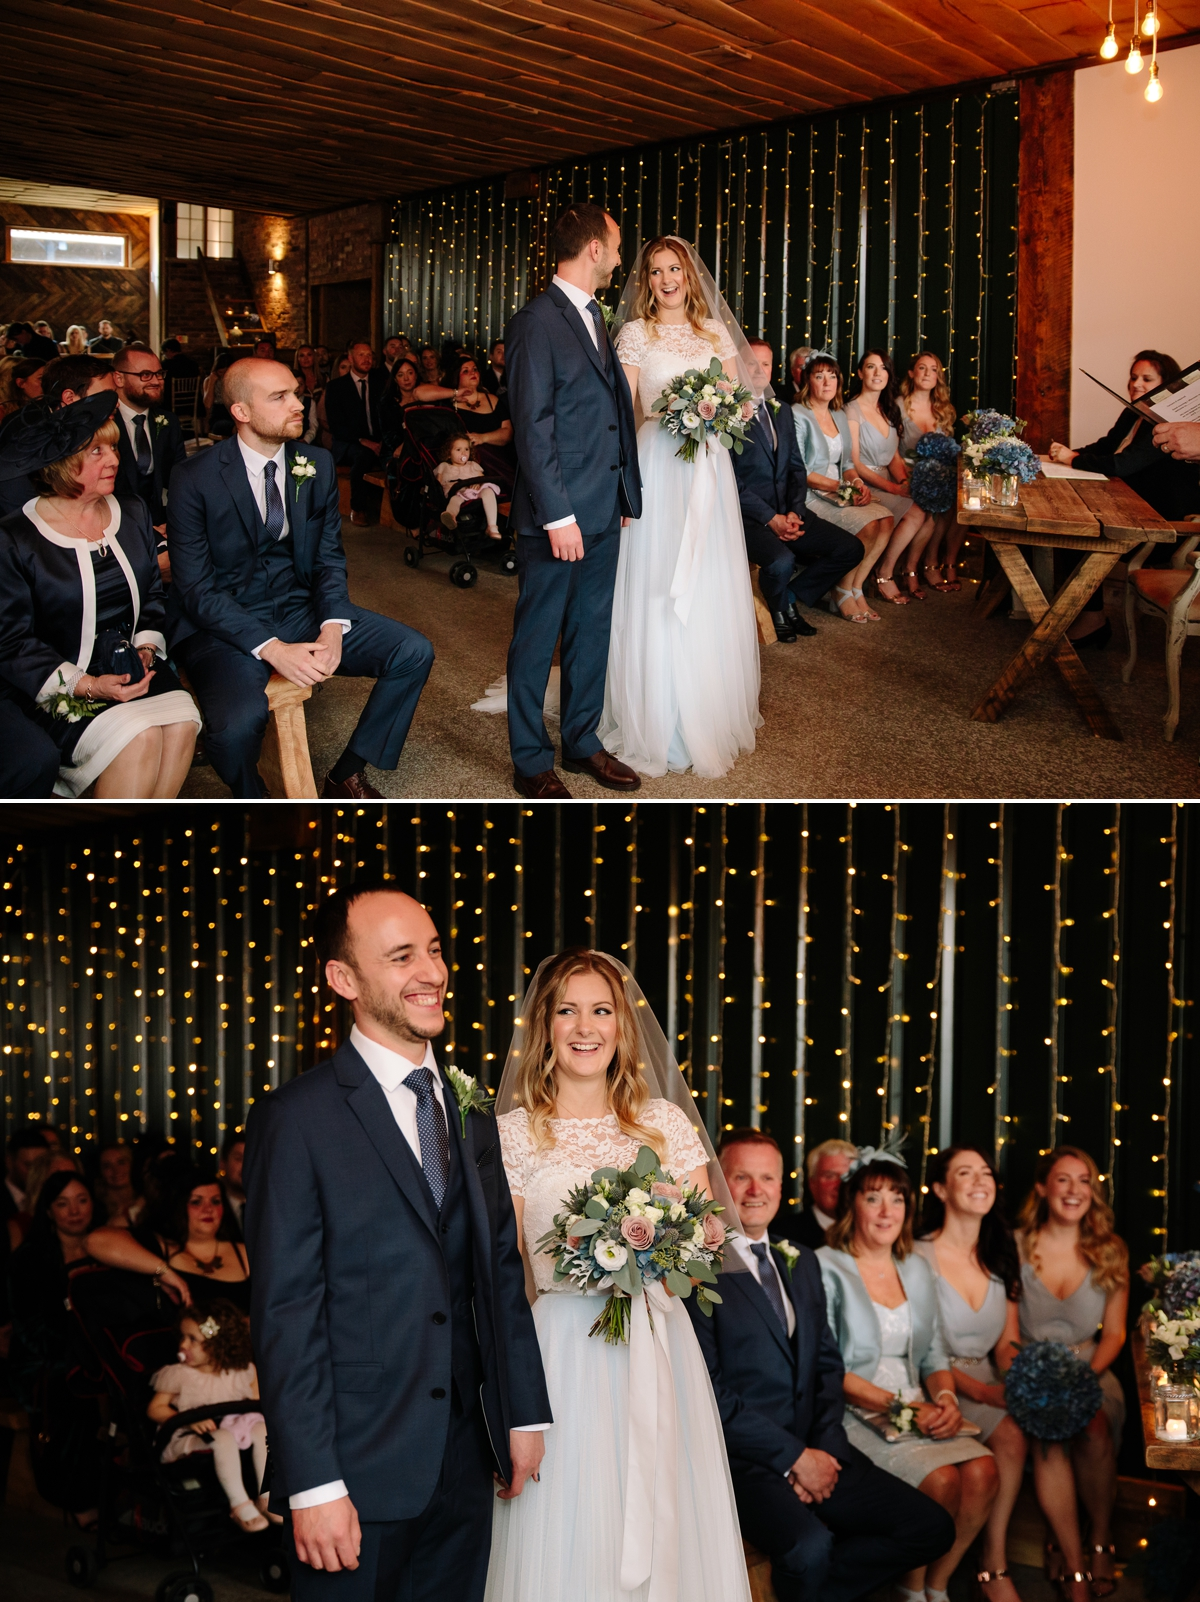 Bride and Groom laughing throughout the ceremony